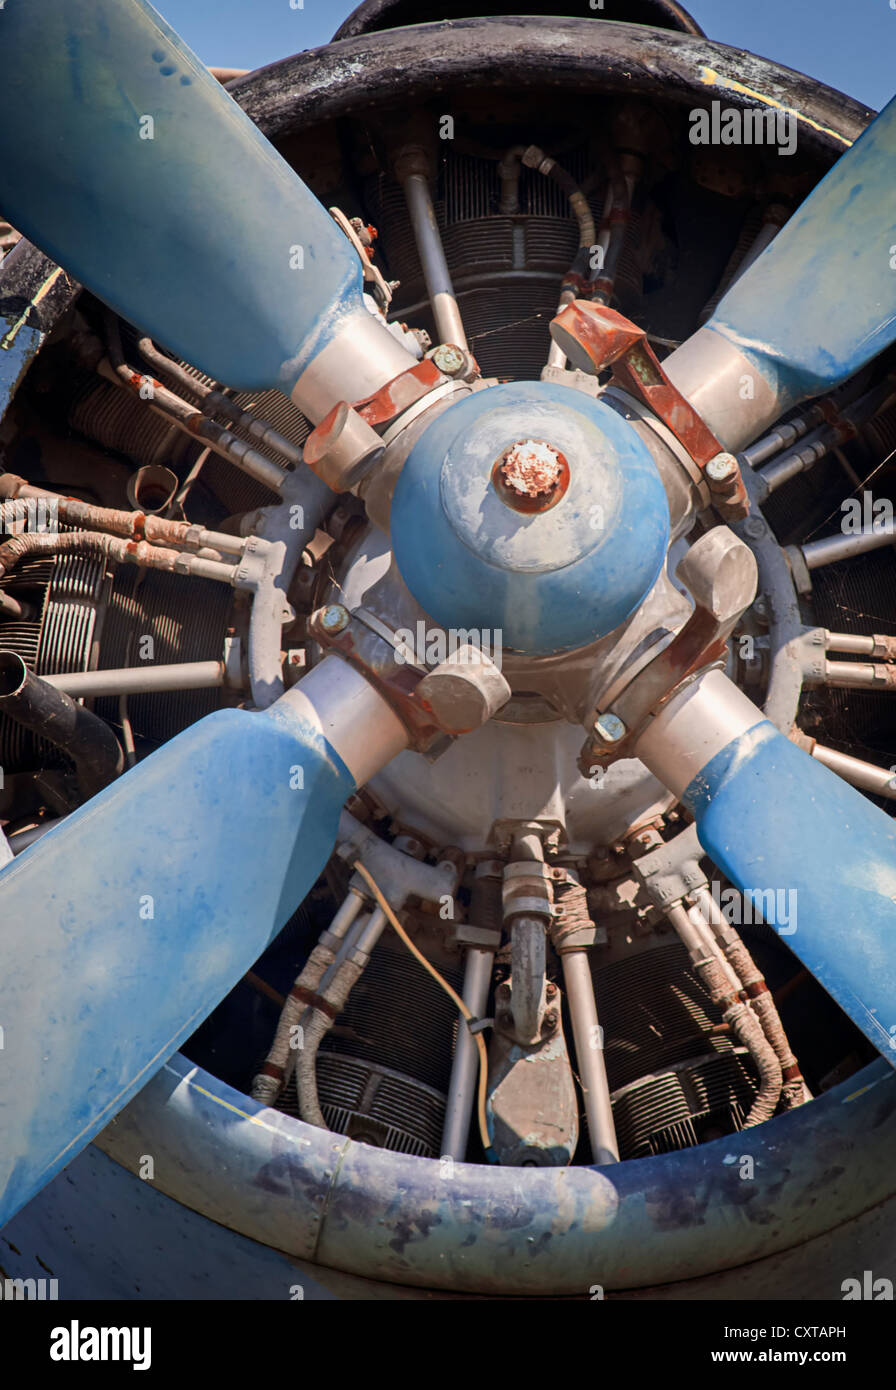 old piston engine and propeller aircraft - Stock Image